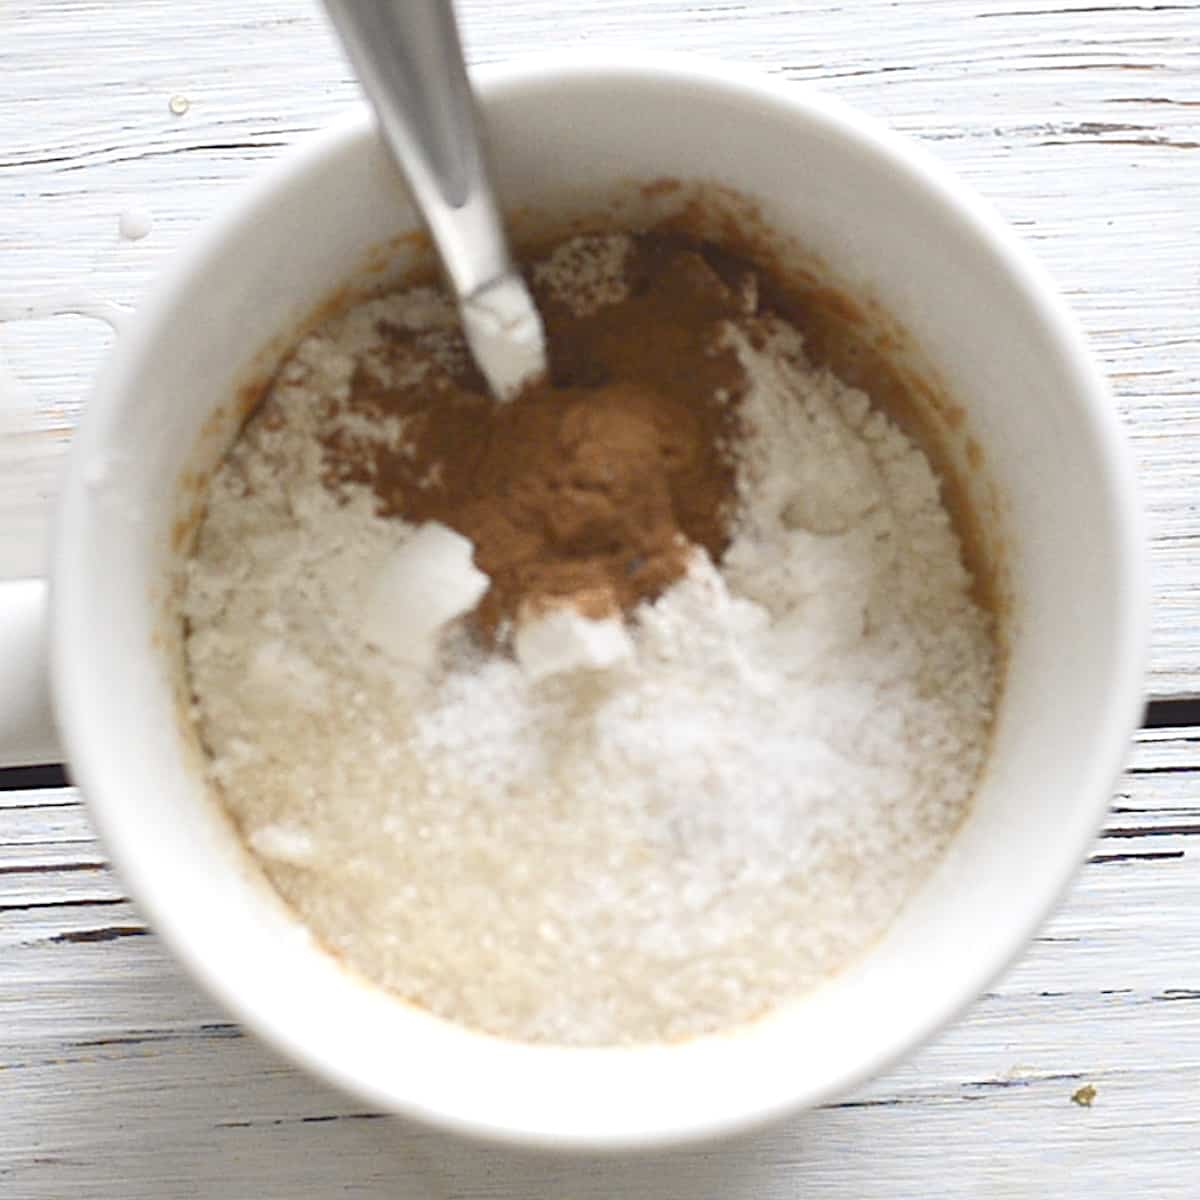 a mug with flour, cinnamon and sugar in it